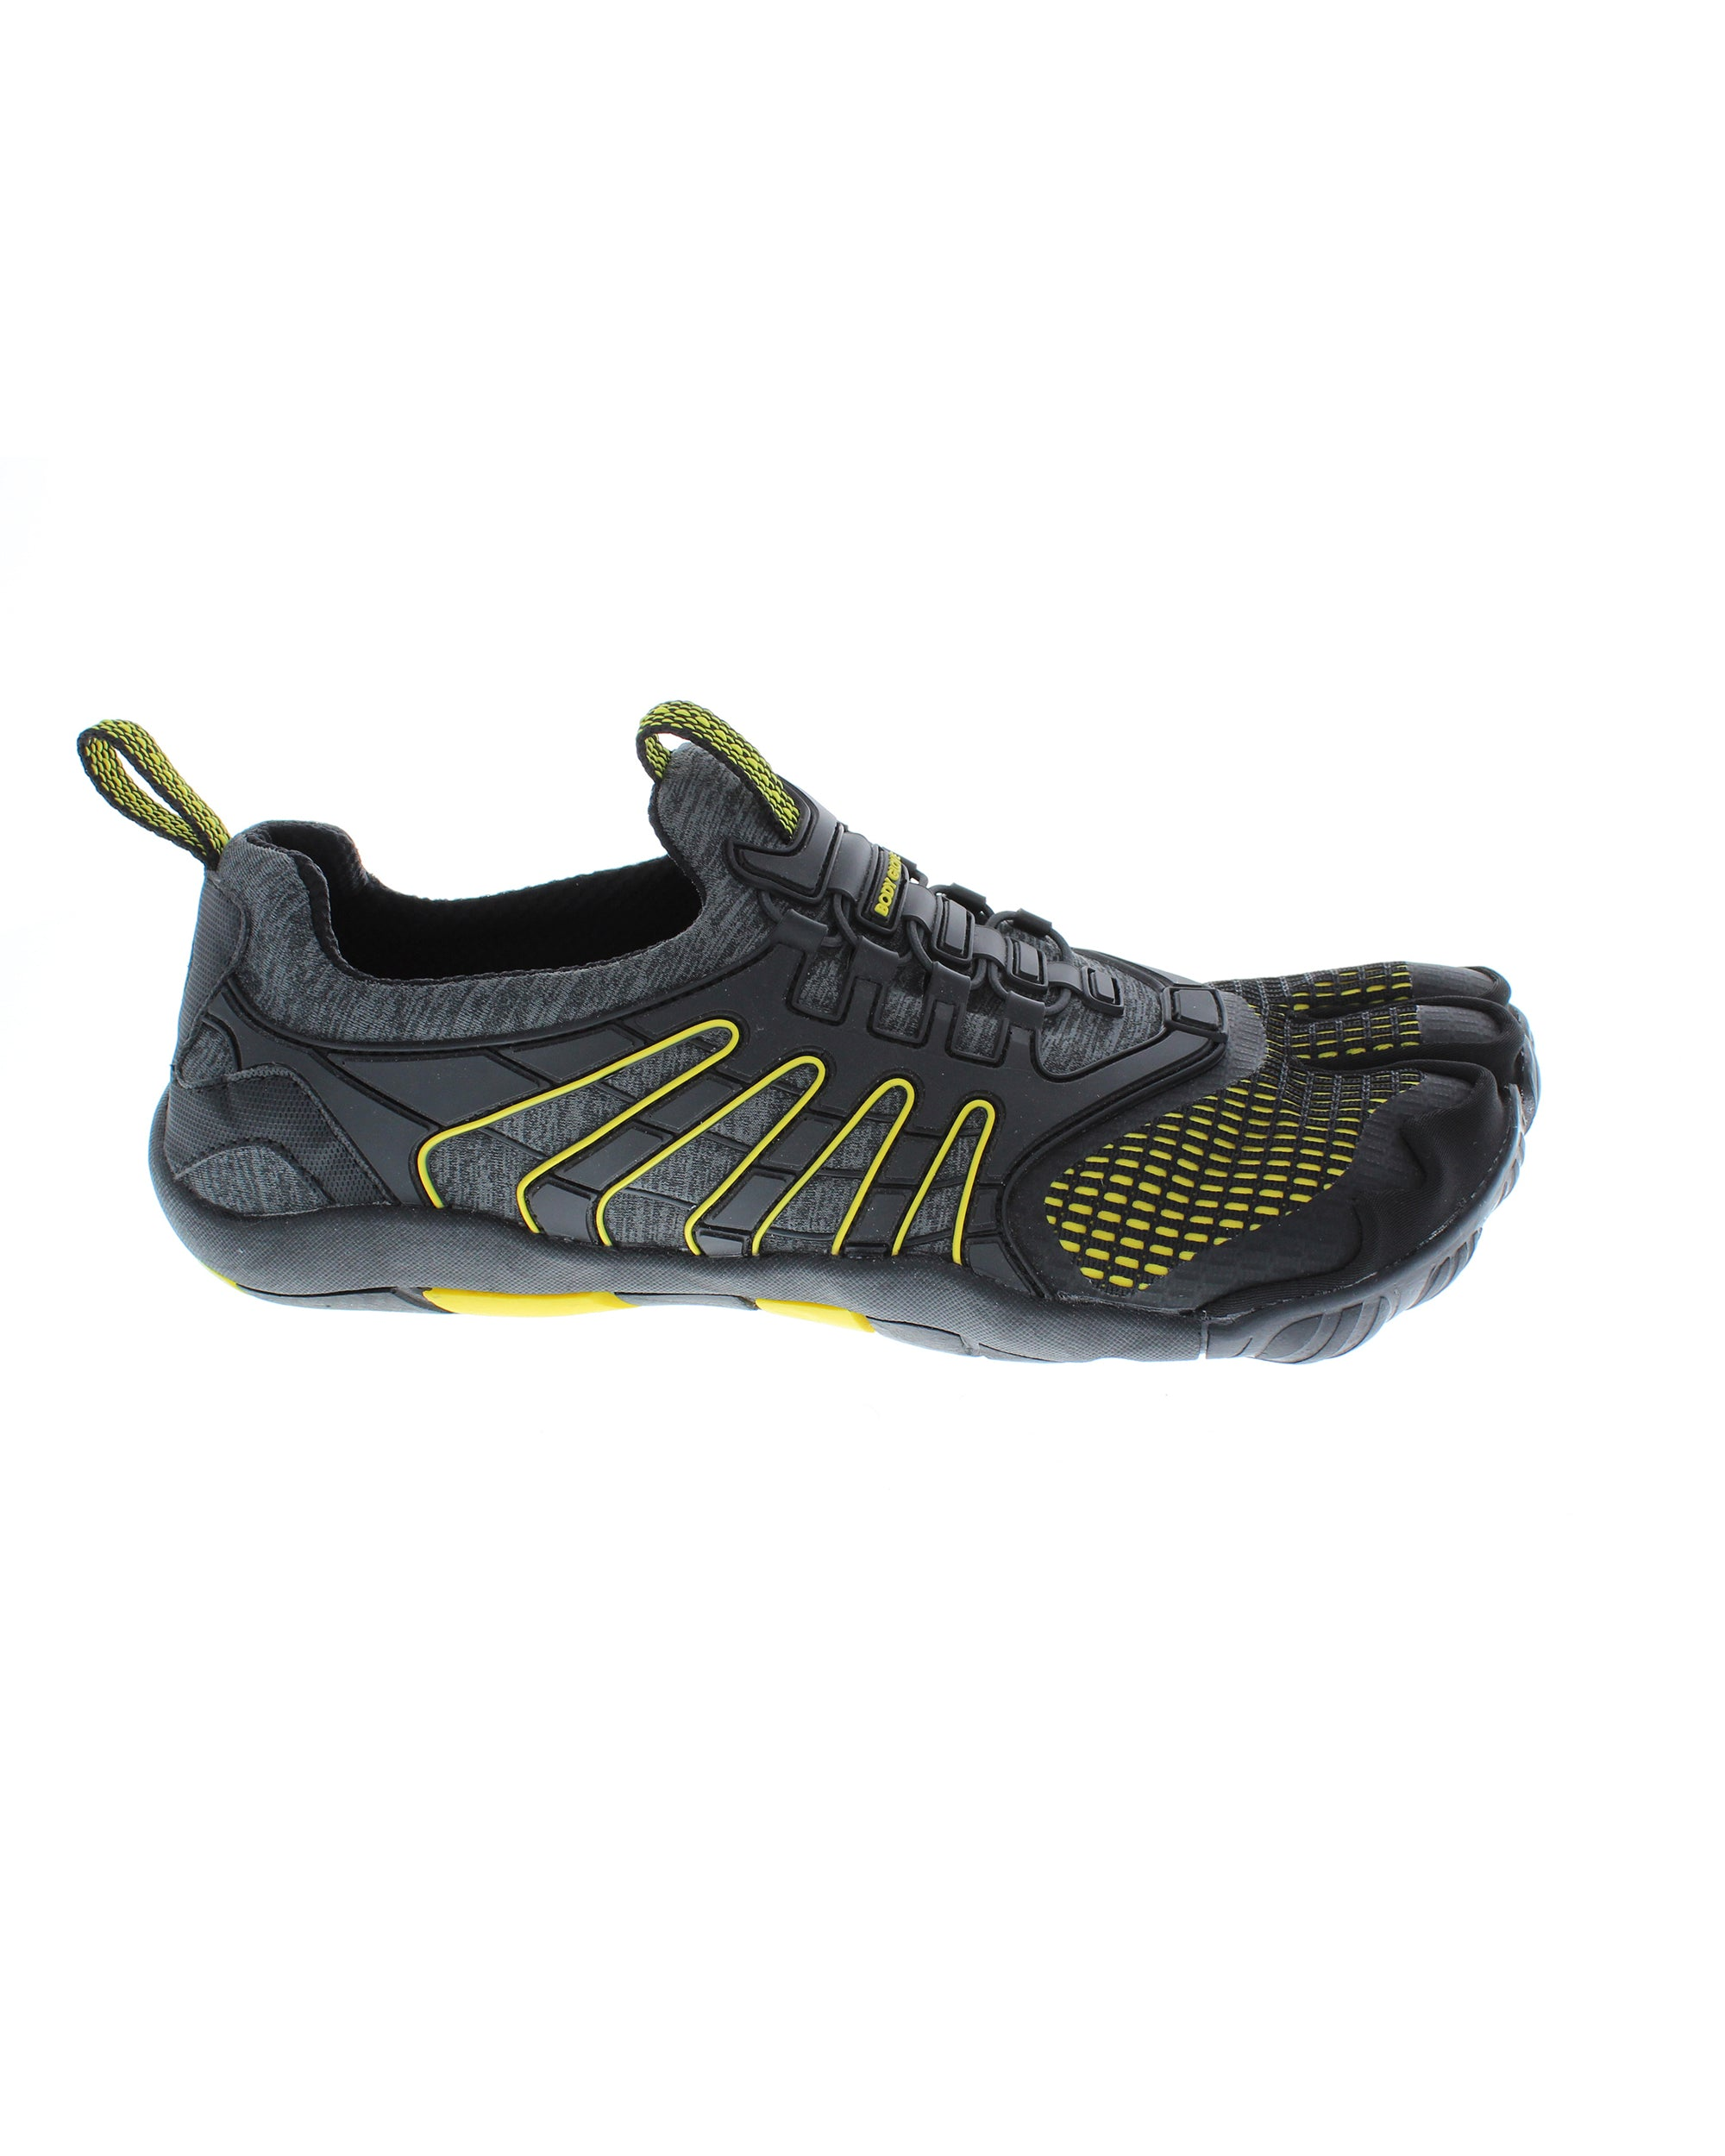 Men's 3T Barefoot Hero Water Shoes - Black/Yellow